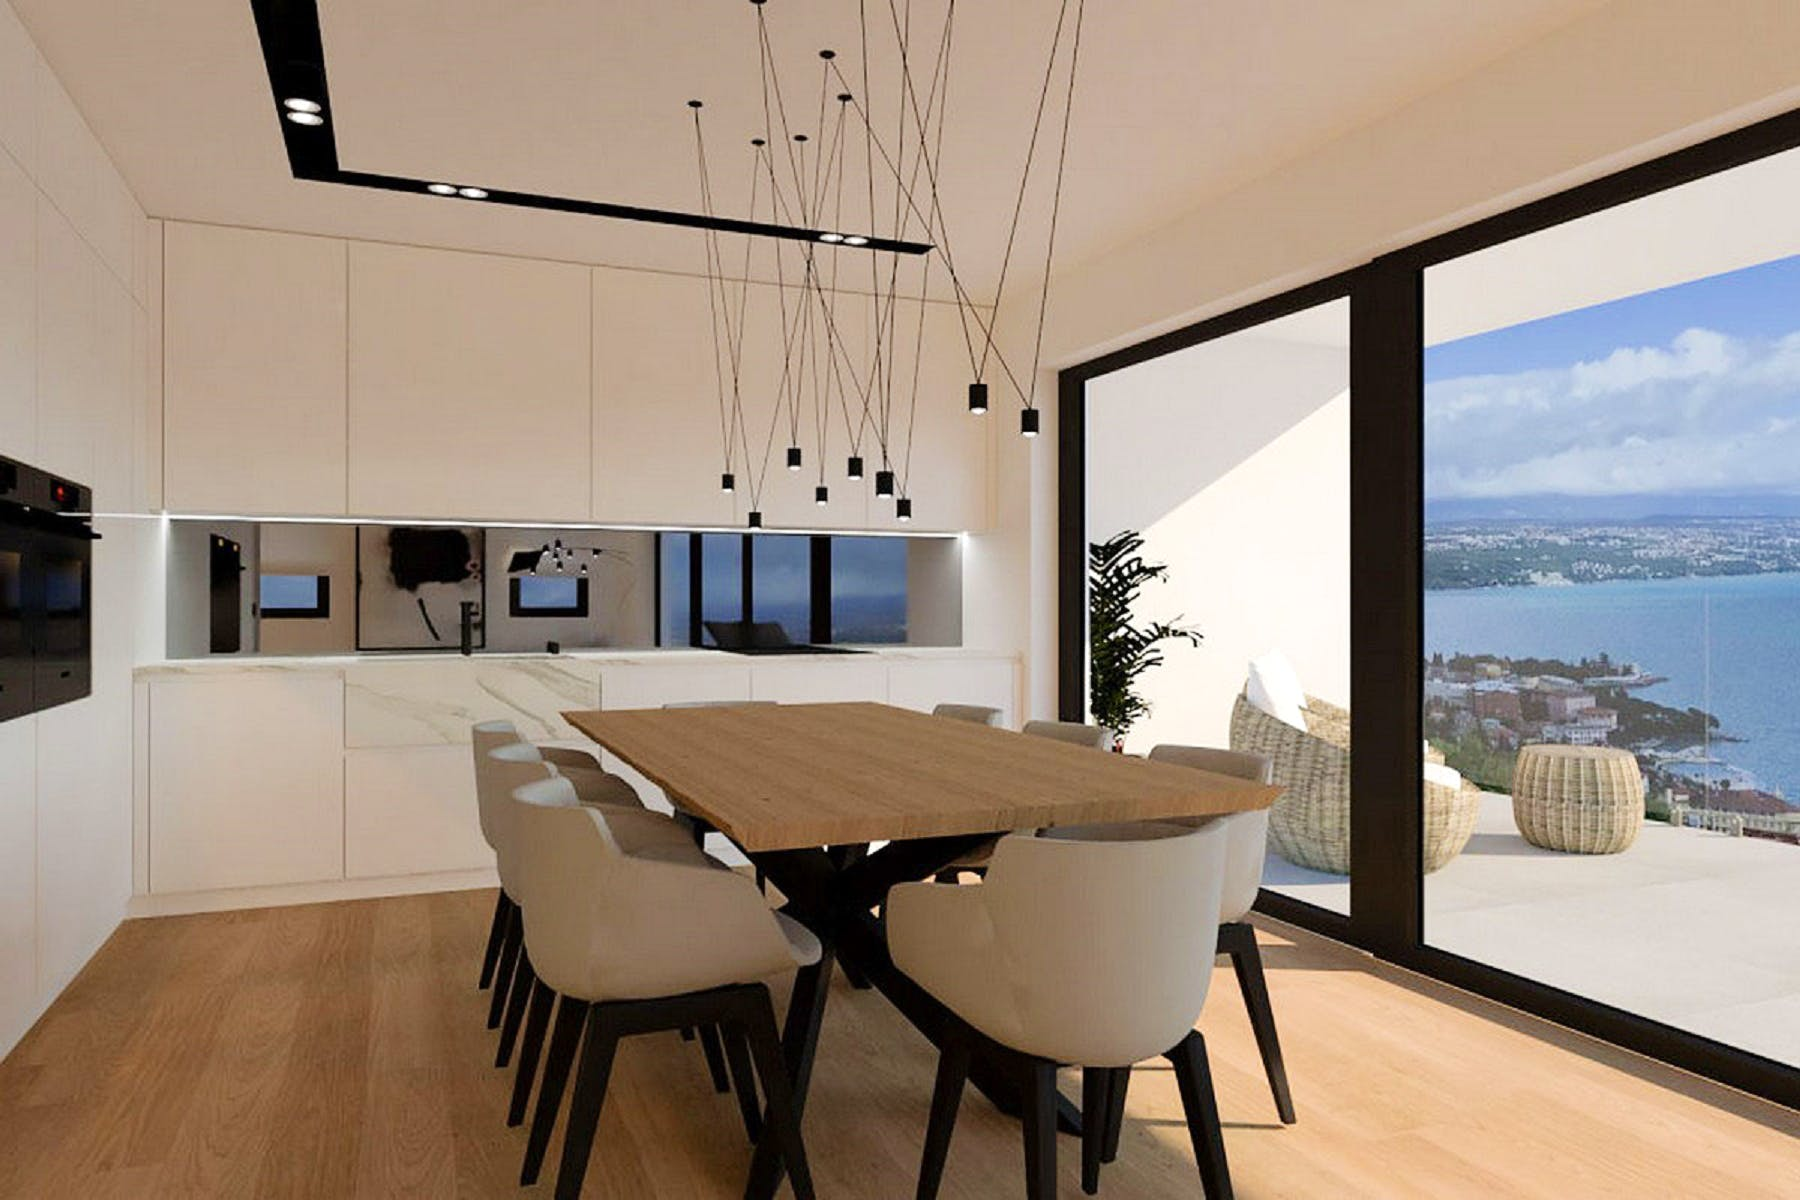 Dining room connected to the kitchen and terrace